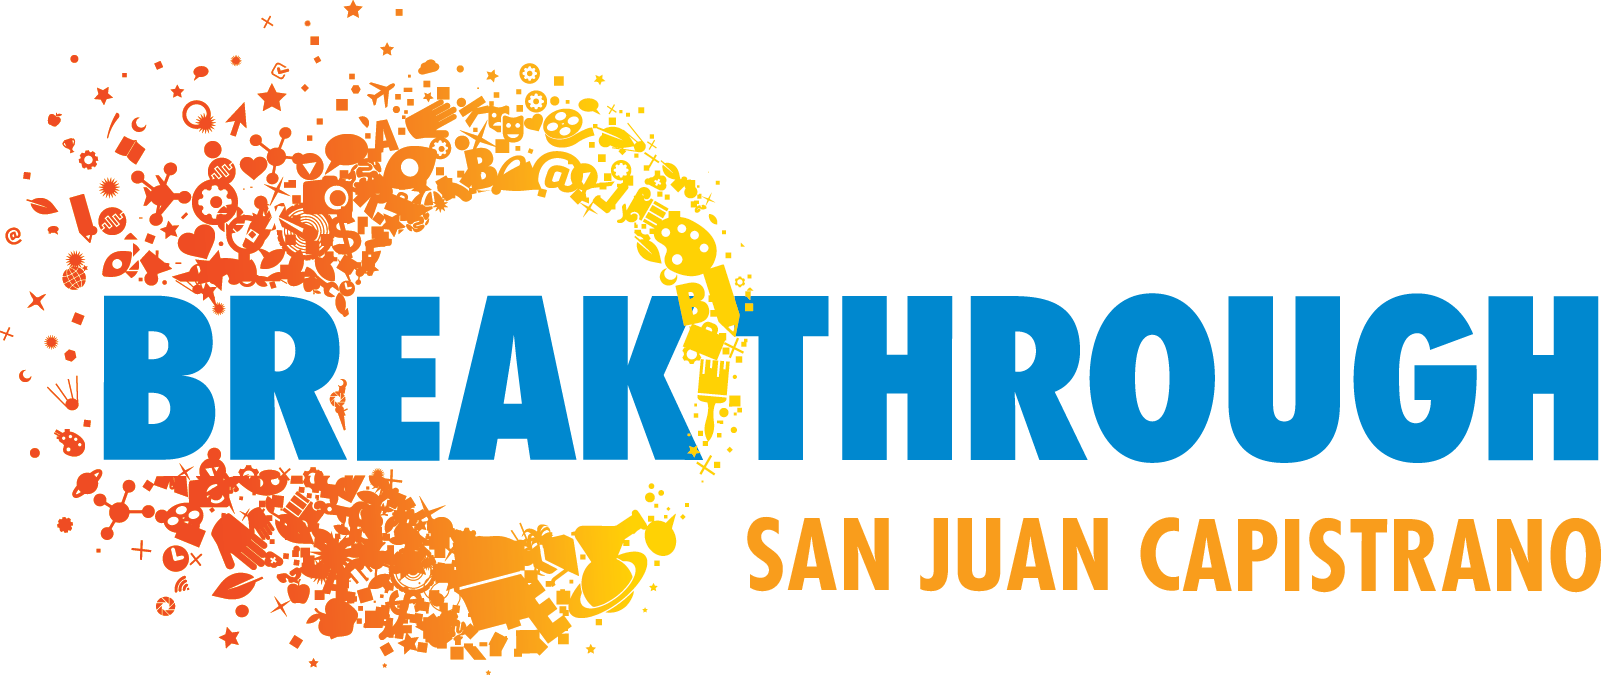 Breakthrough San Juan Capistrano